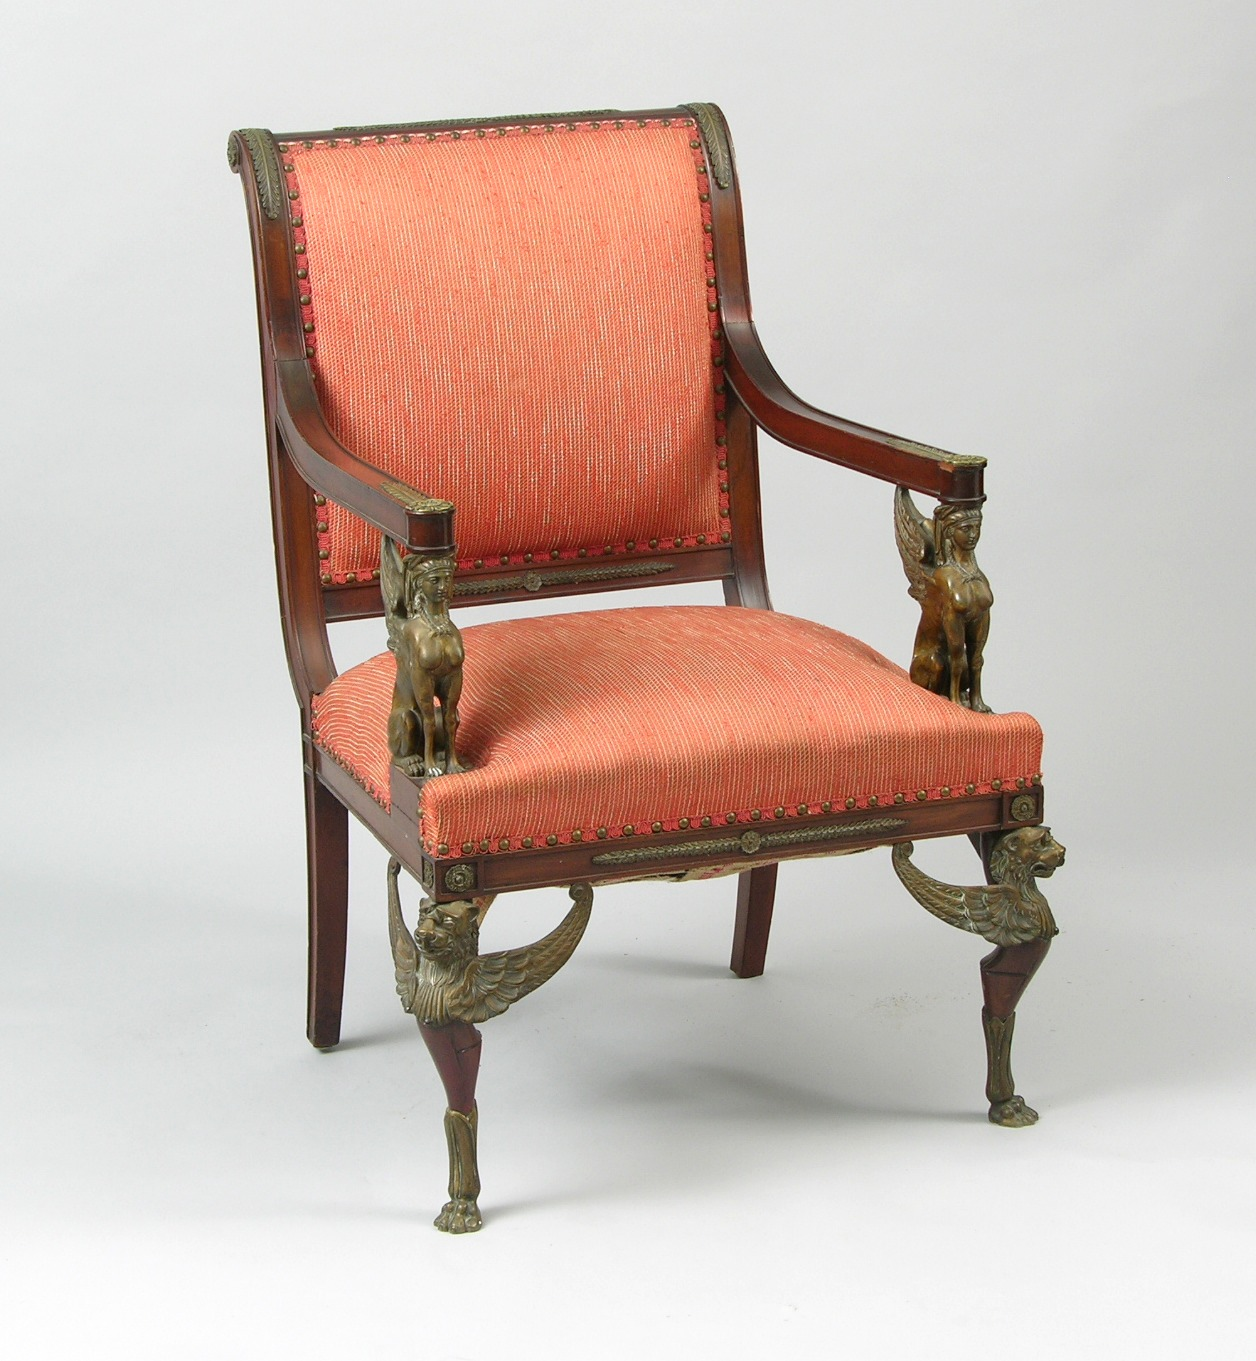 Great An Antique Armchair, Second Empire